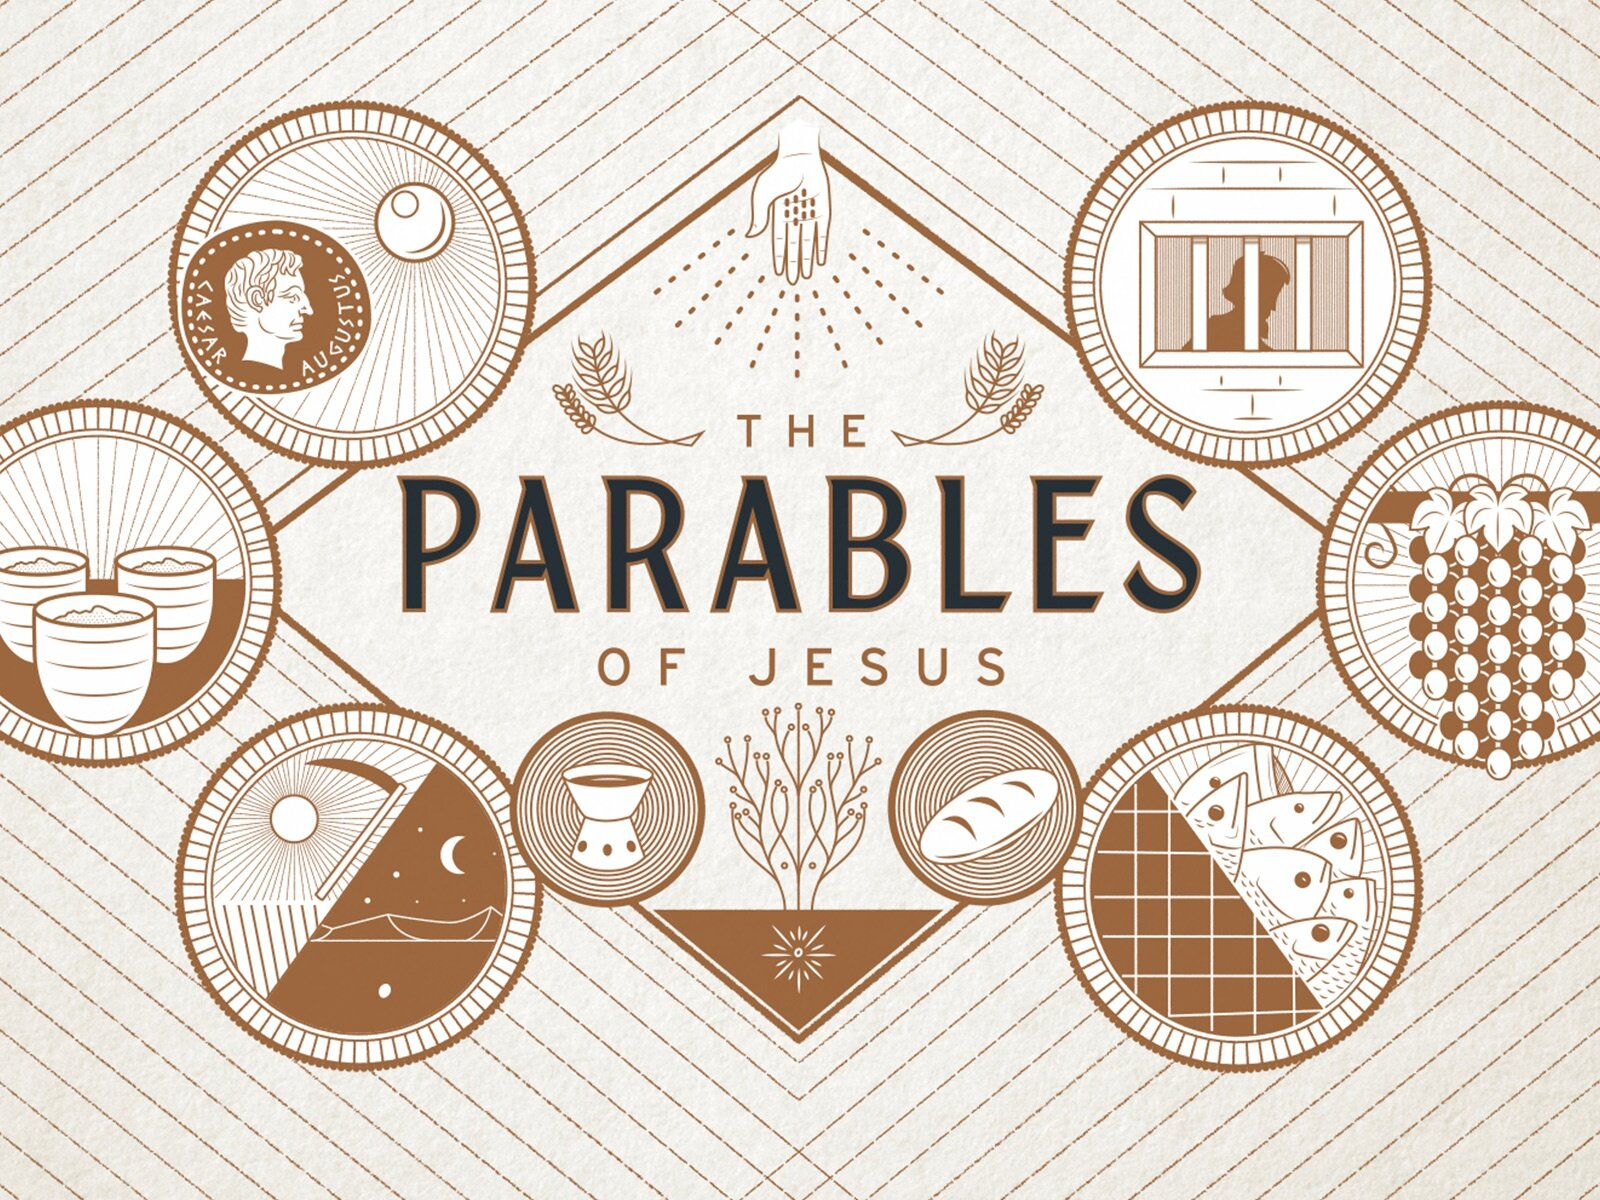 Parables of the Kingdom (Series) Begins in August